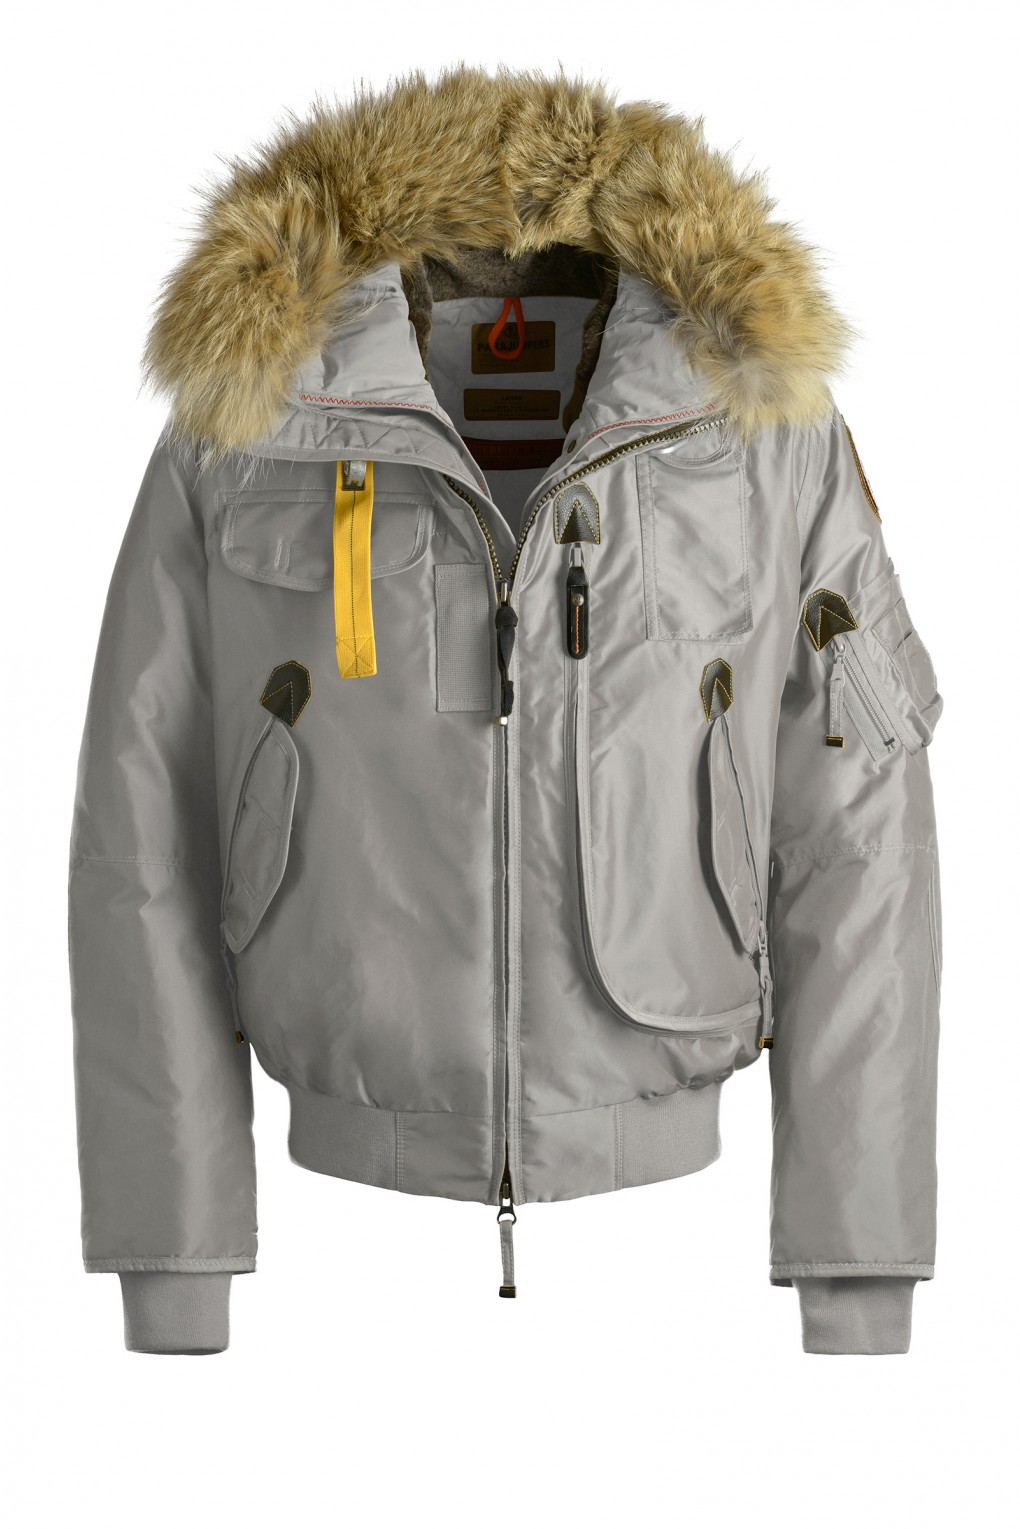 parajumpers GOBI man outerwear Sand